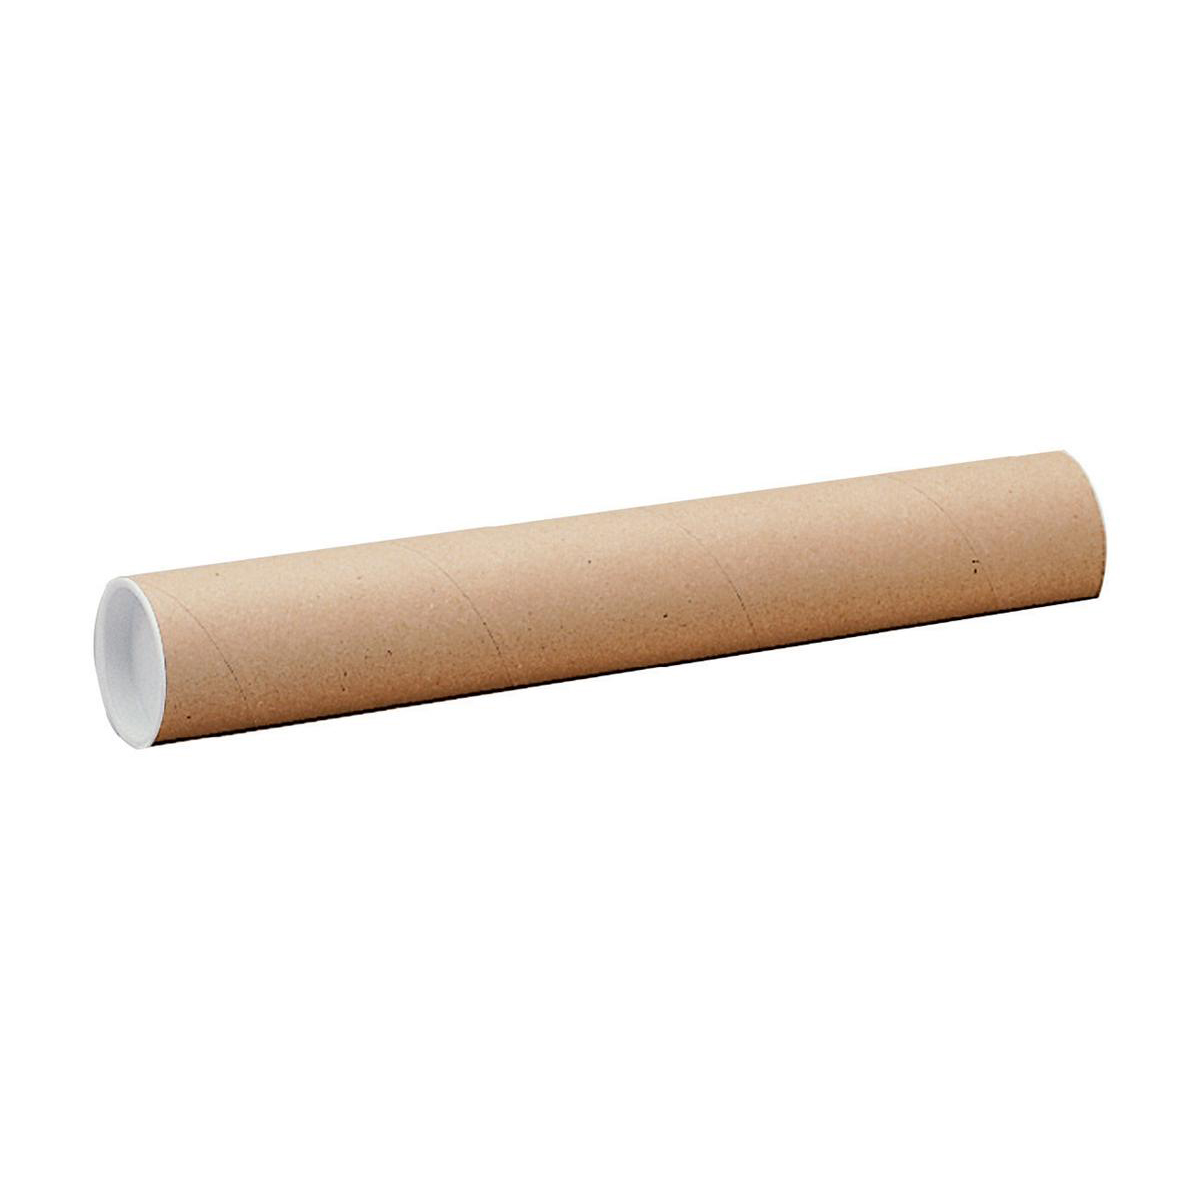 Postal Tube Cardboard with Plastic End Caps L1140xDia.102mm PT 1140/102MM Pack 12